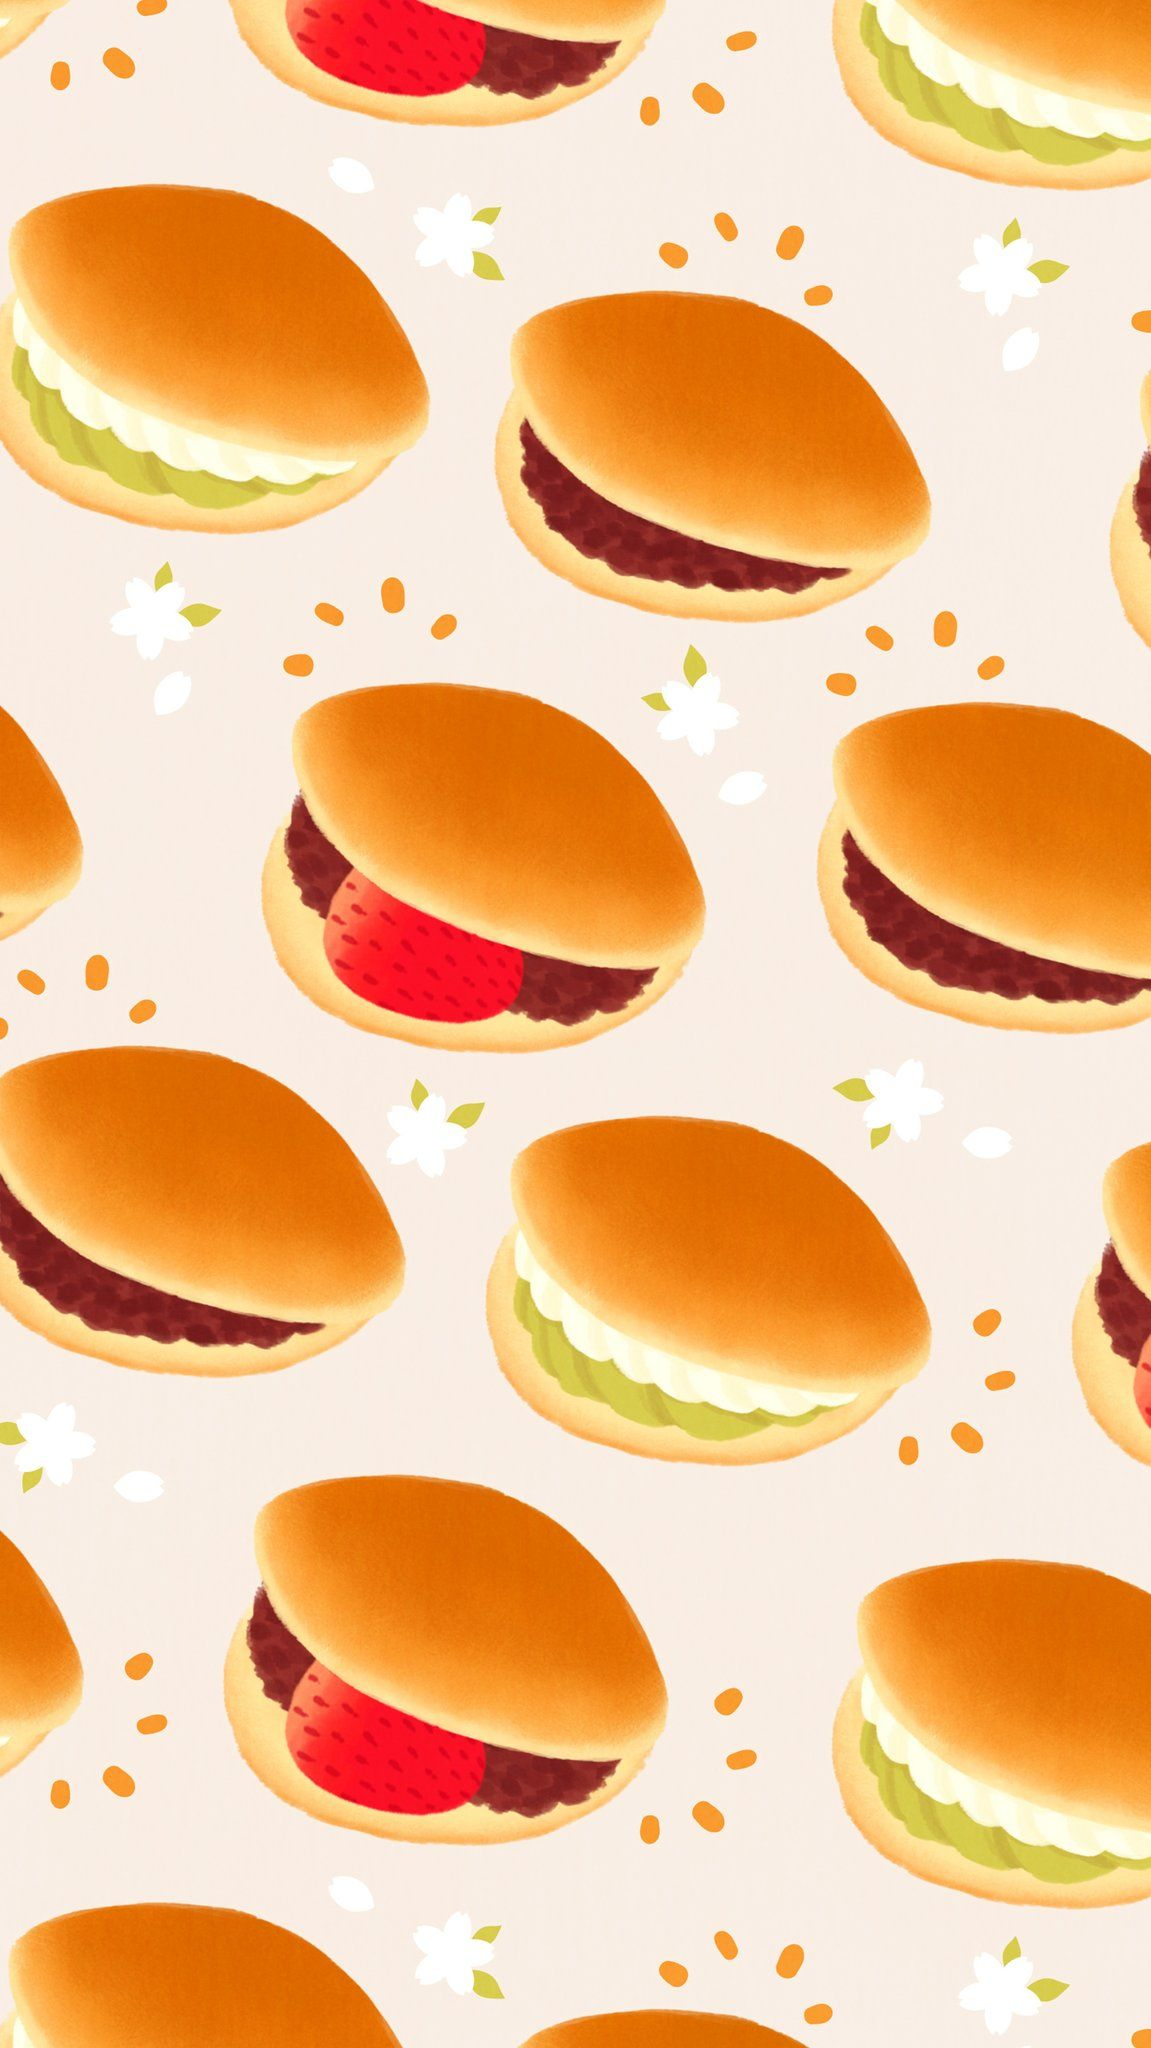 Omiyu みゆき In Food Illustrations Food Backgrounds Aesthetic Food